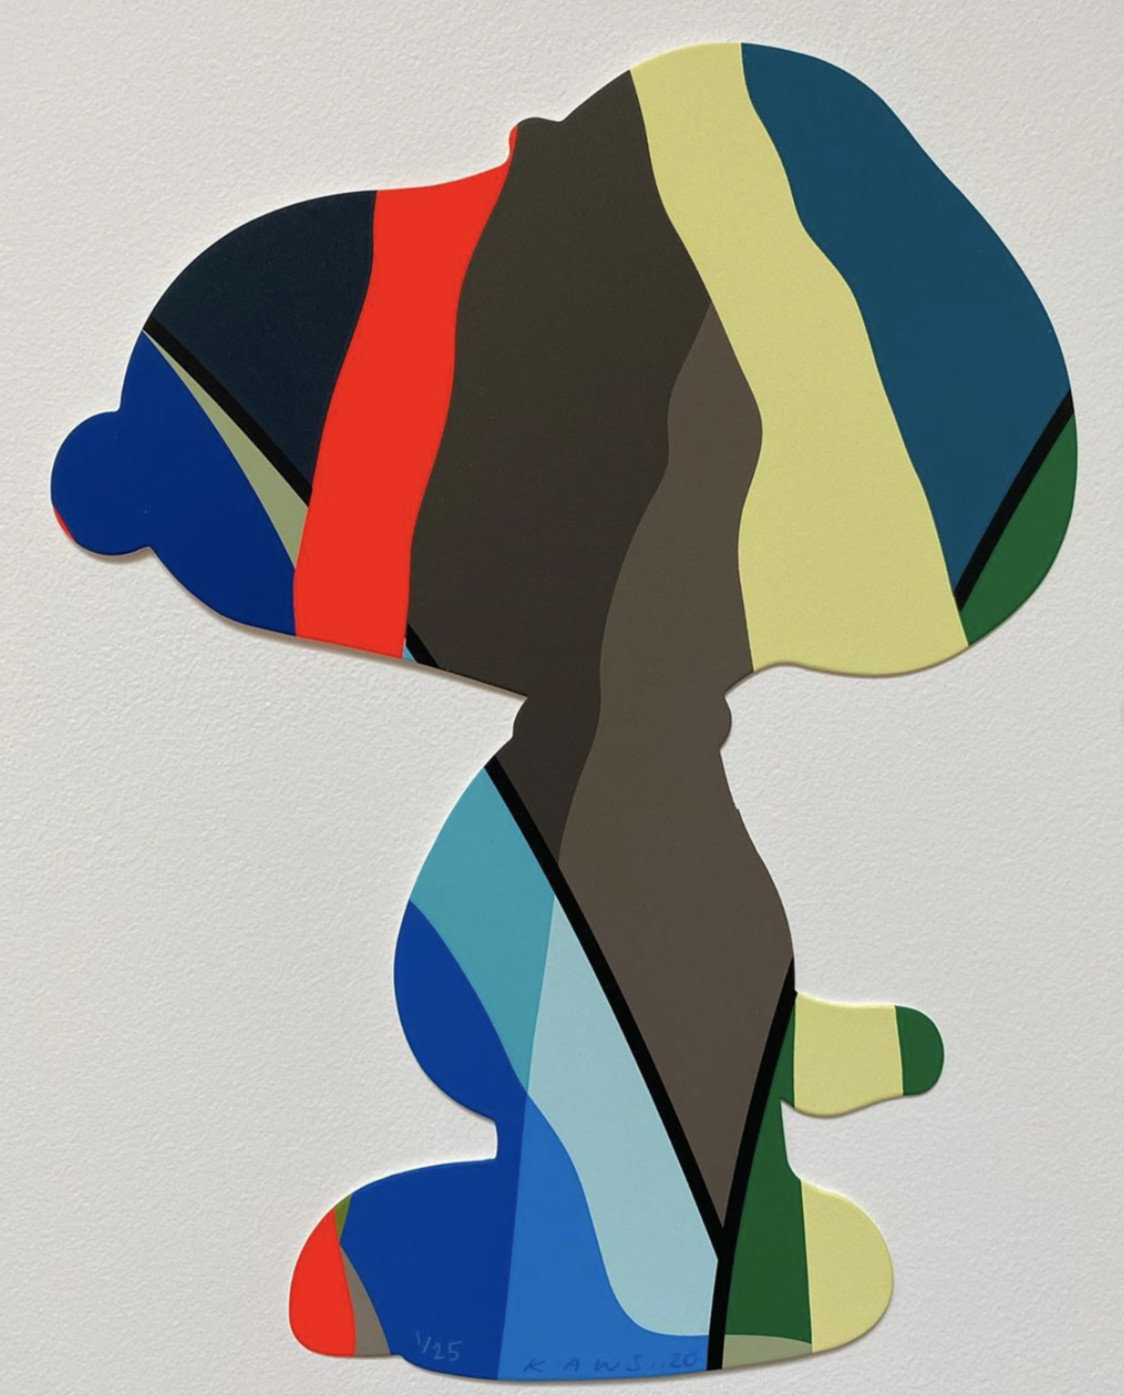 KAWS Announces Limited Print Releases to Benefit Charities